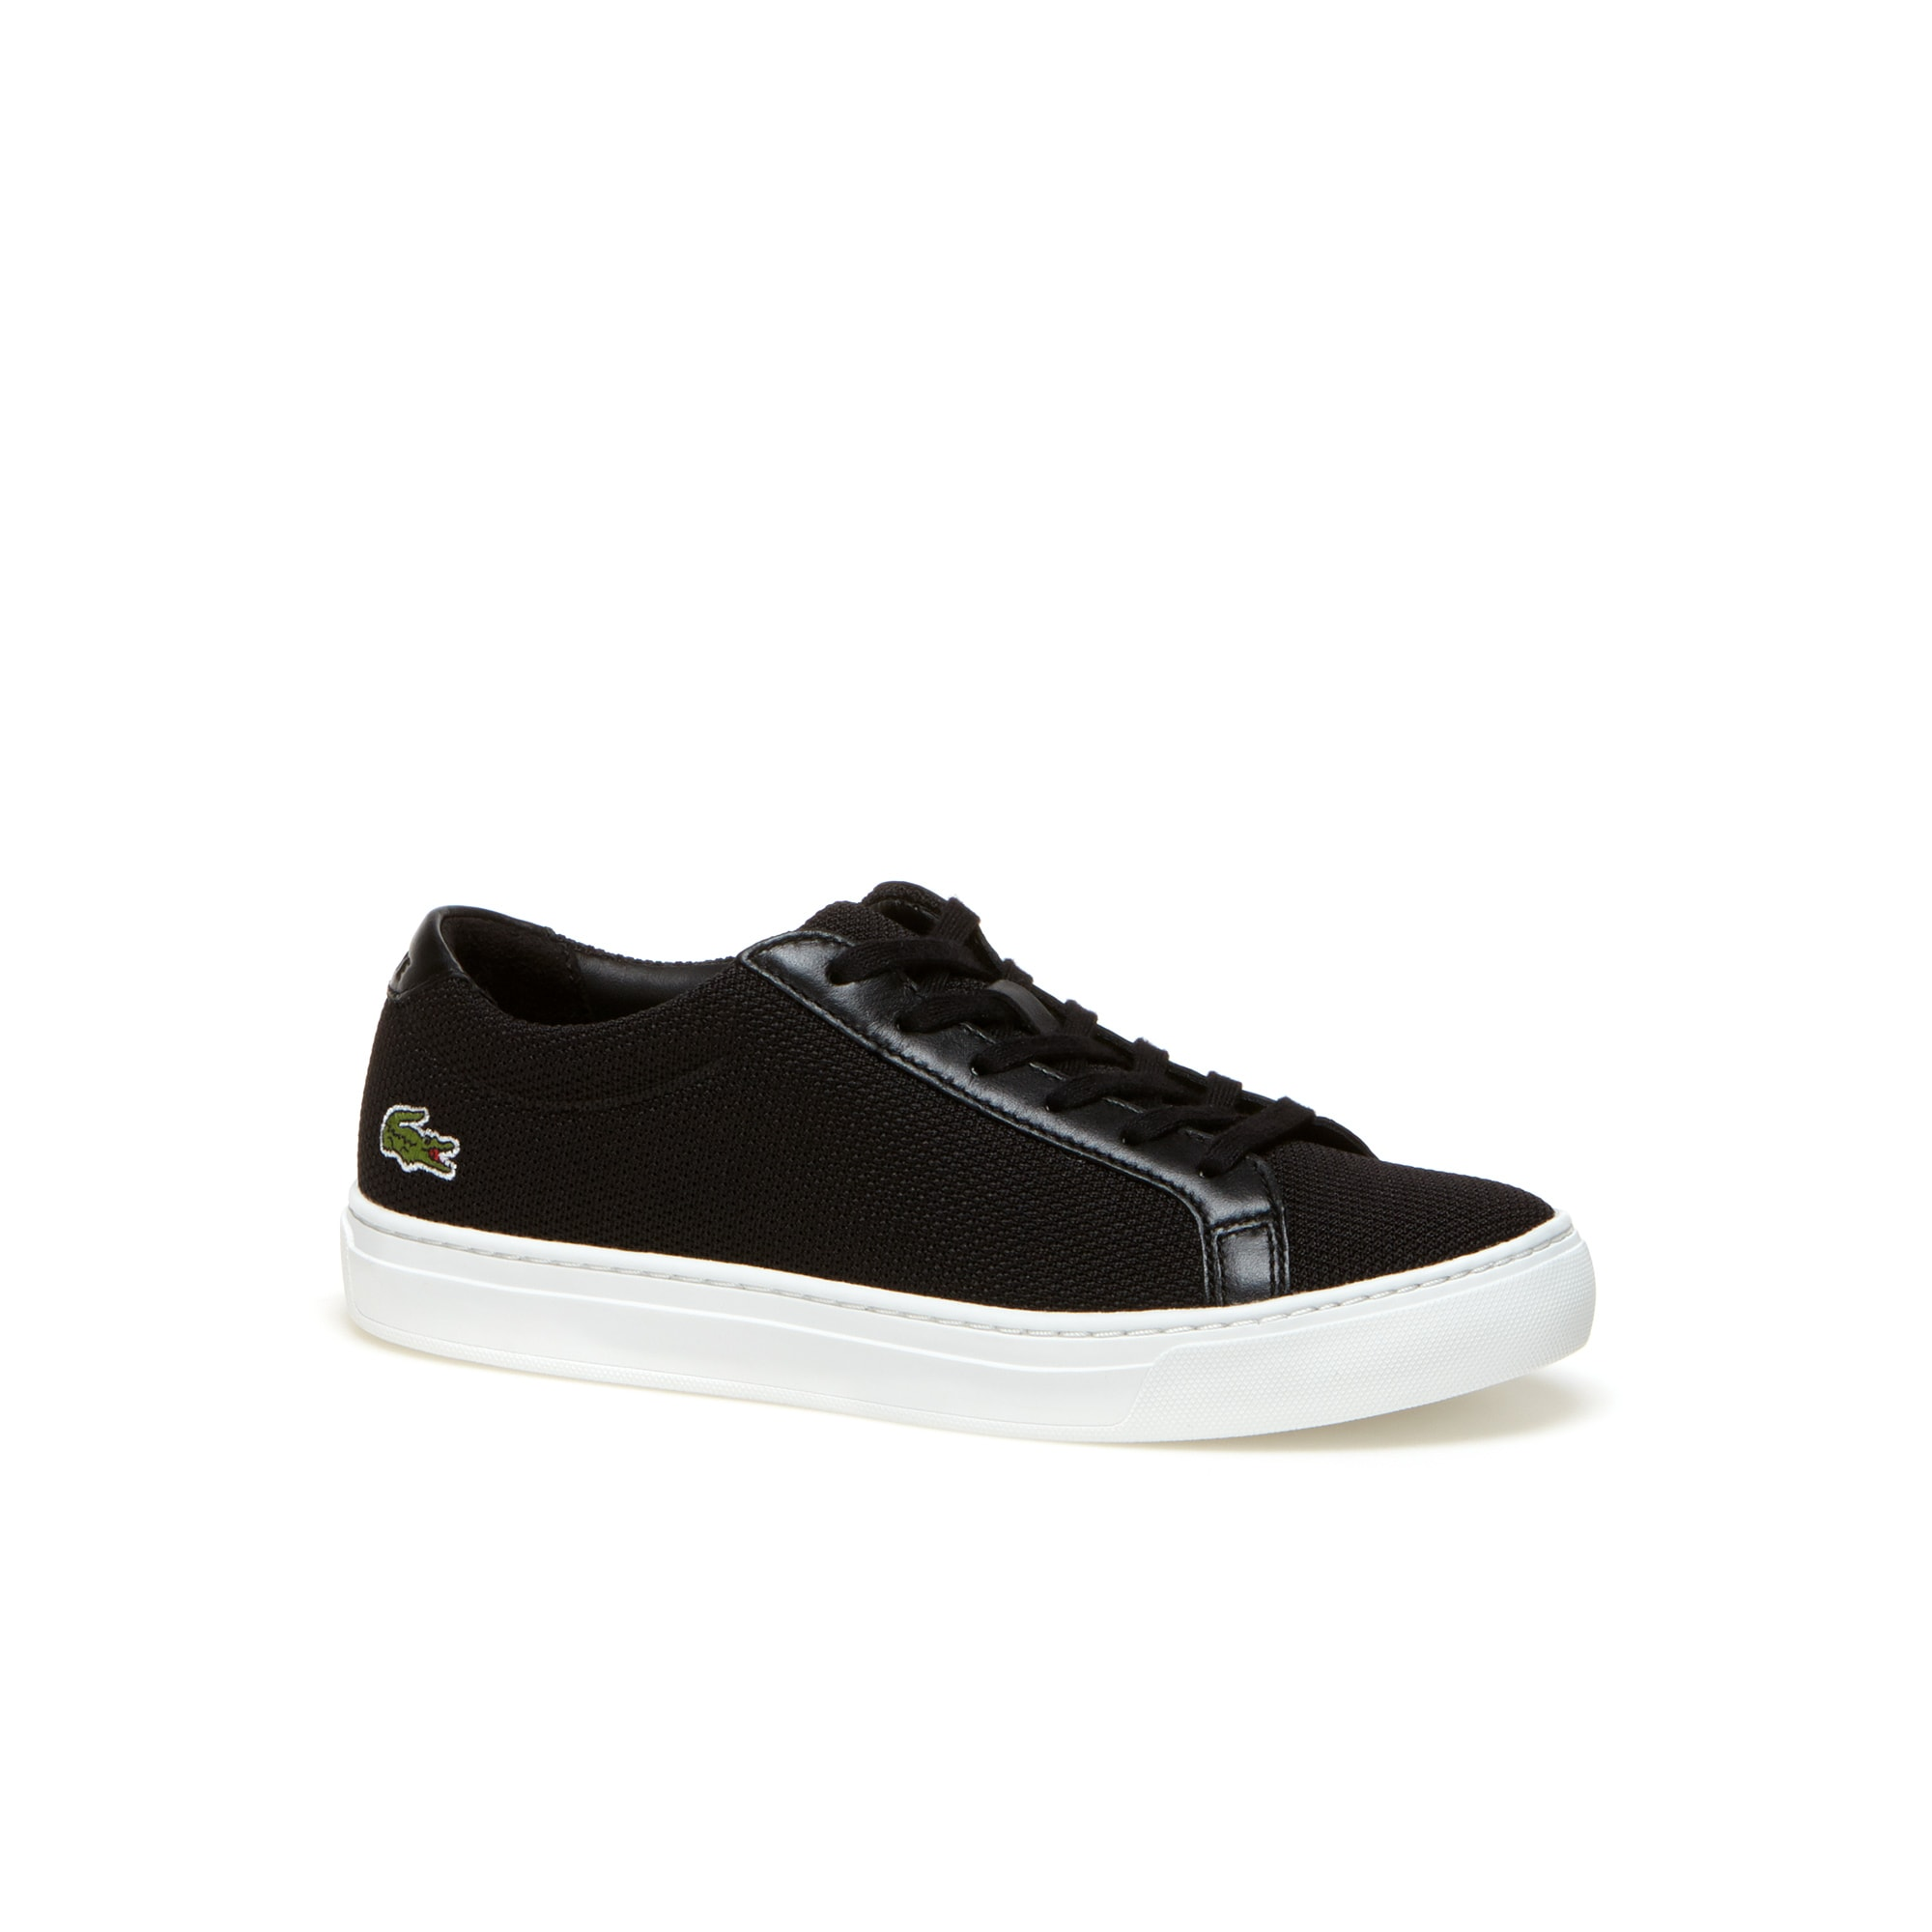 e82c645f49 Shoes for Women | Footwear | LACOSTE